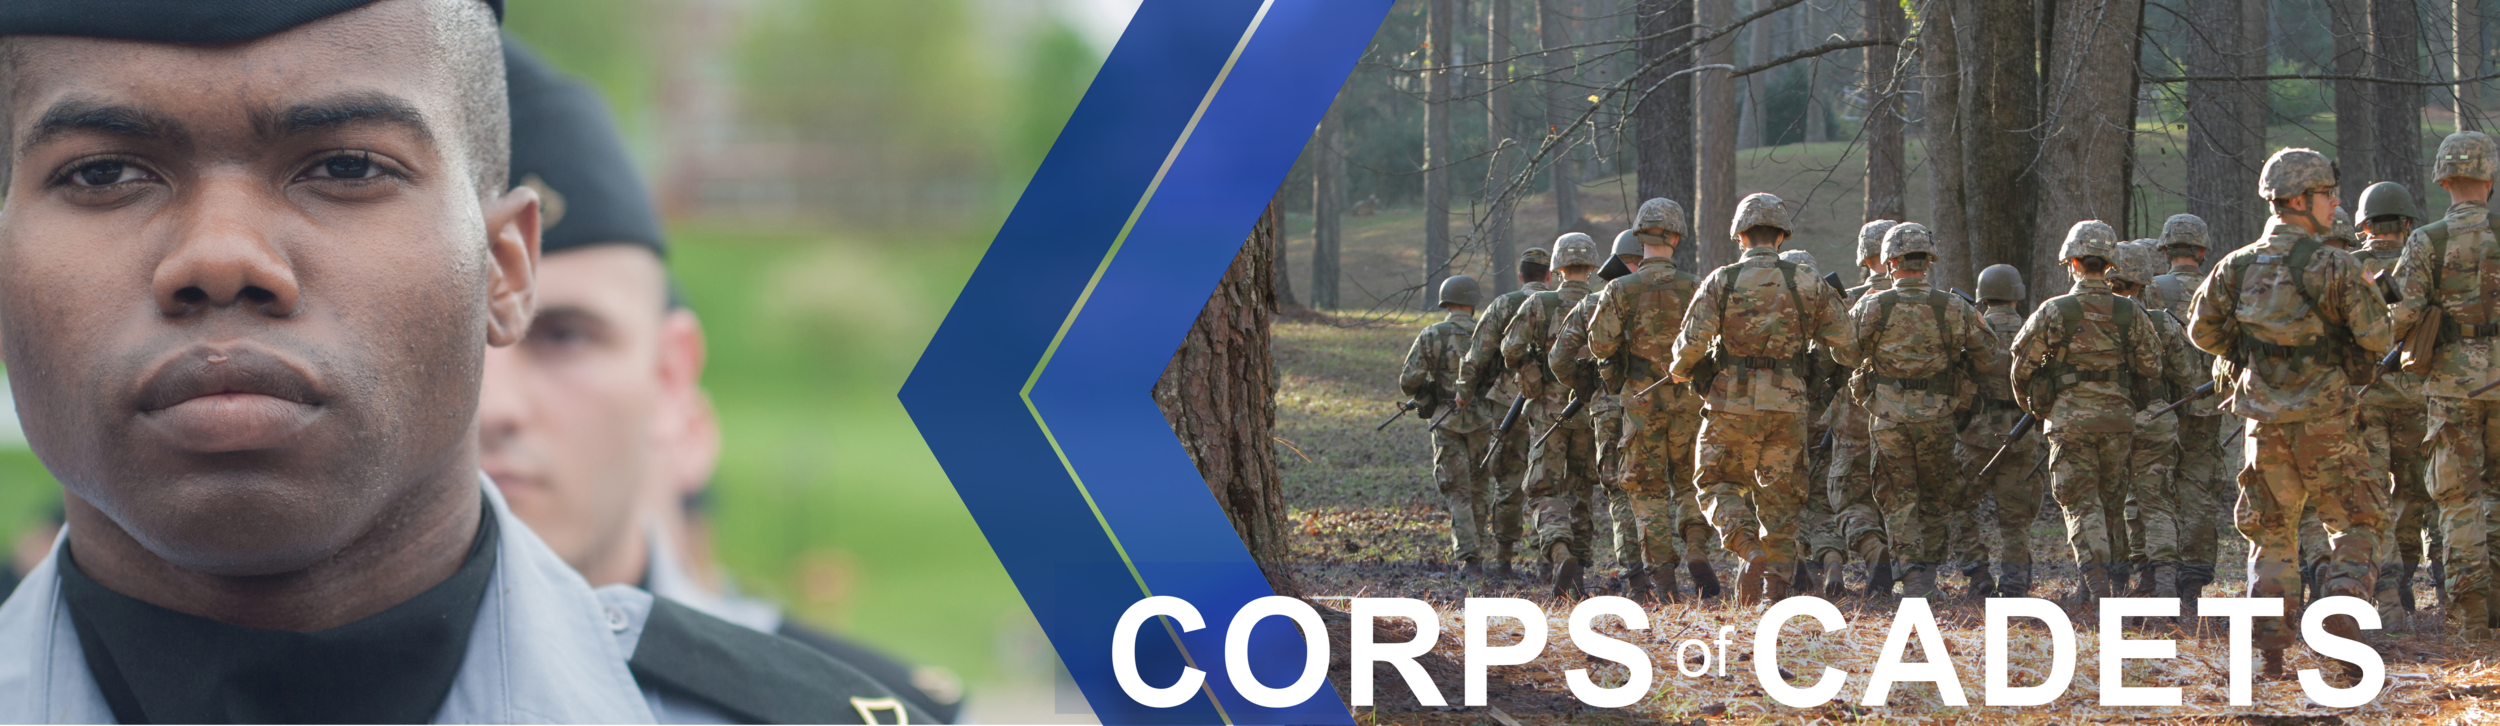 Corps of Cadets page banner: Features a close up photo of a male corpsman. Second Image shows Corps of Cadets members walking as a group through the woods.